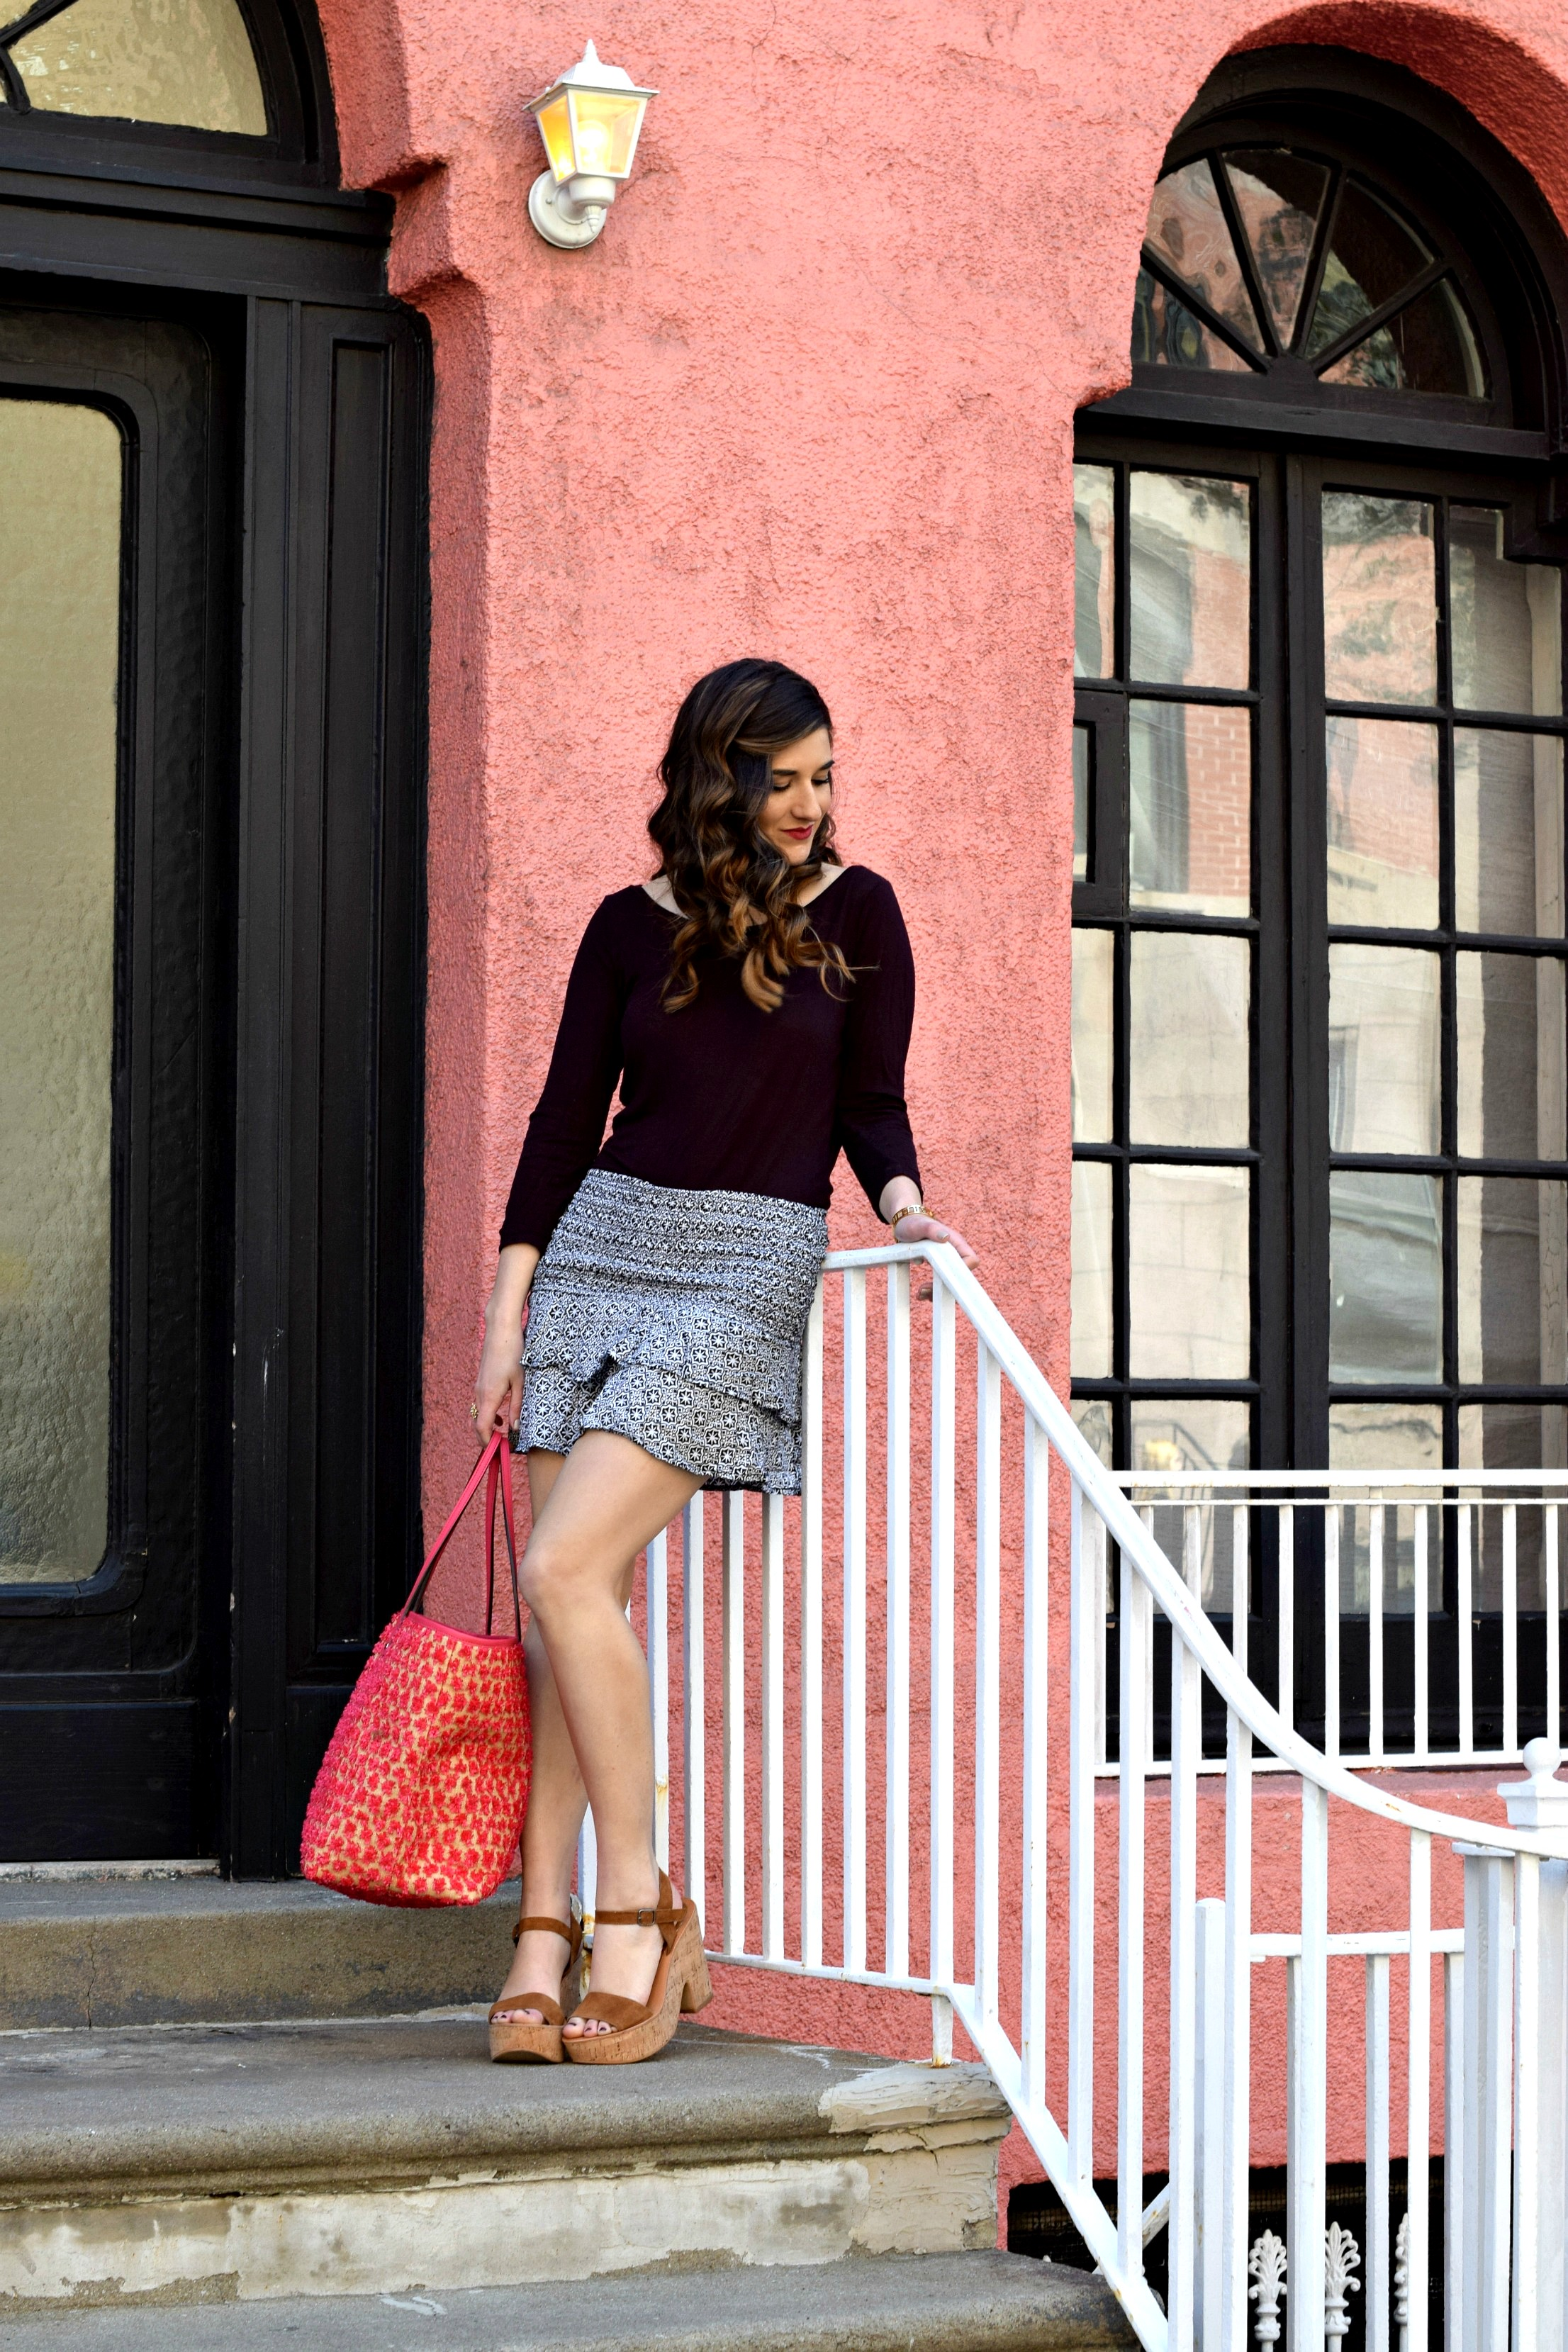 Printed Mini Skirt Henri Bendel Pom Pom Tote Louboutins & Love Fashion Blog Esther Santer NYC Street Style Blogger Outfit OOTD Summer Look Pretty Beautiful Inspo Photoshoot Girl Women Shoes Wedges Sandals Pink Purple Colorful Hair Shopping Beach Bag.jpg